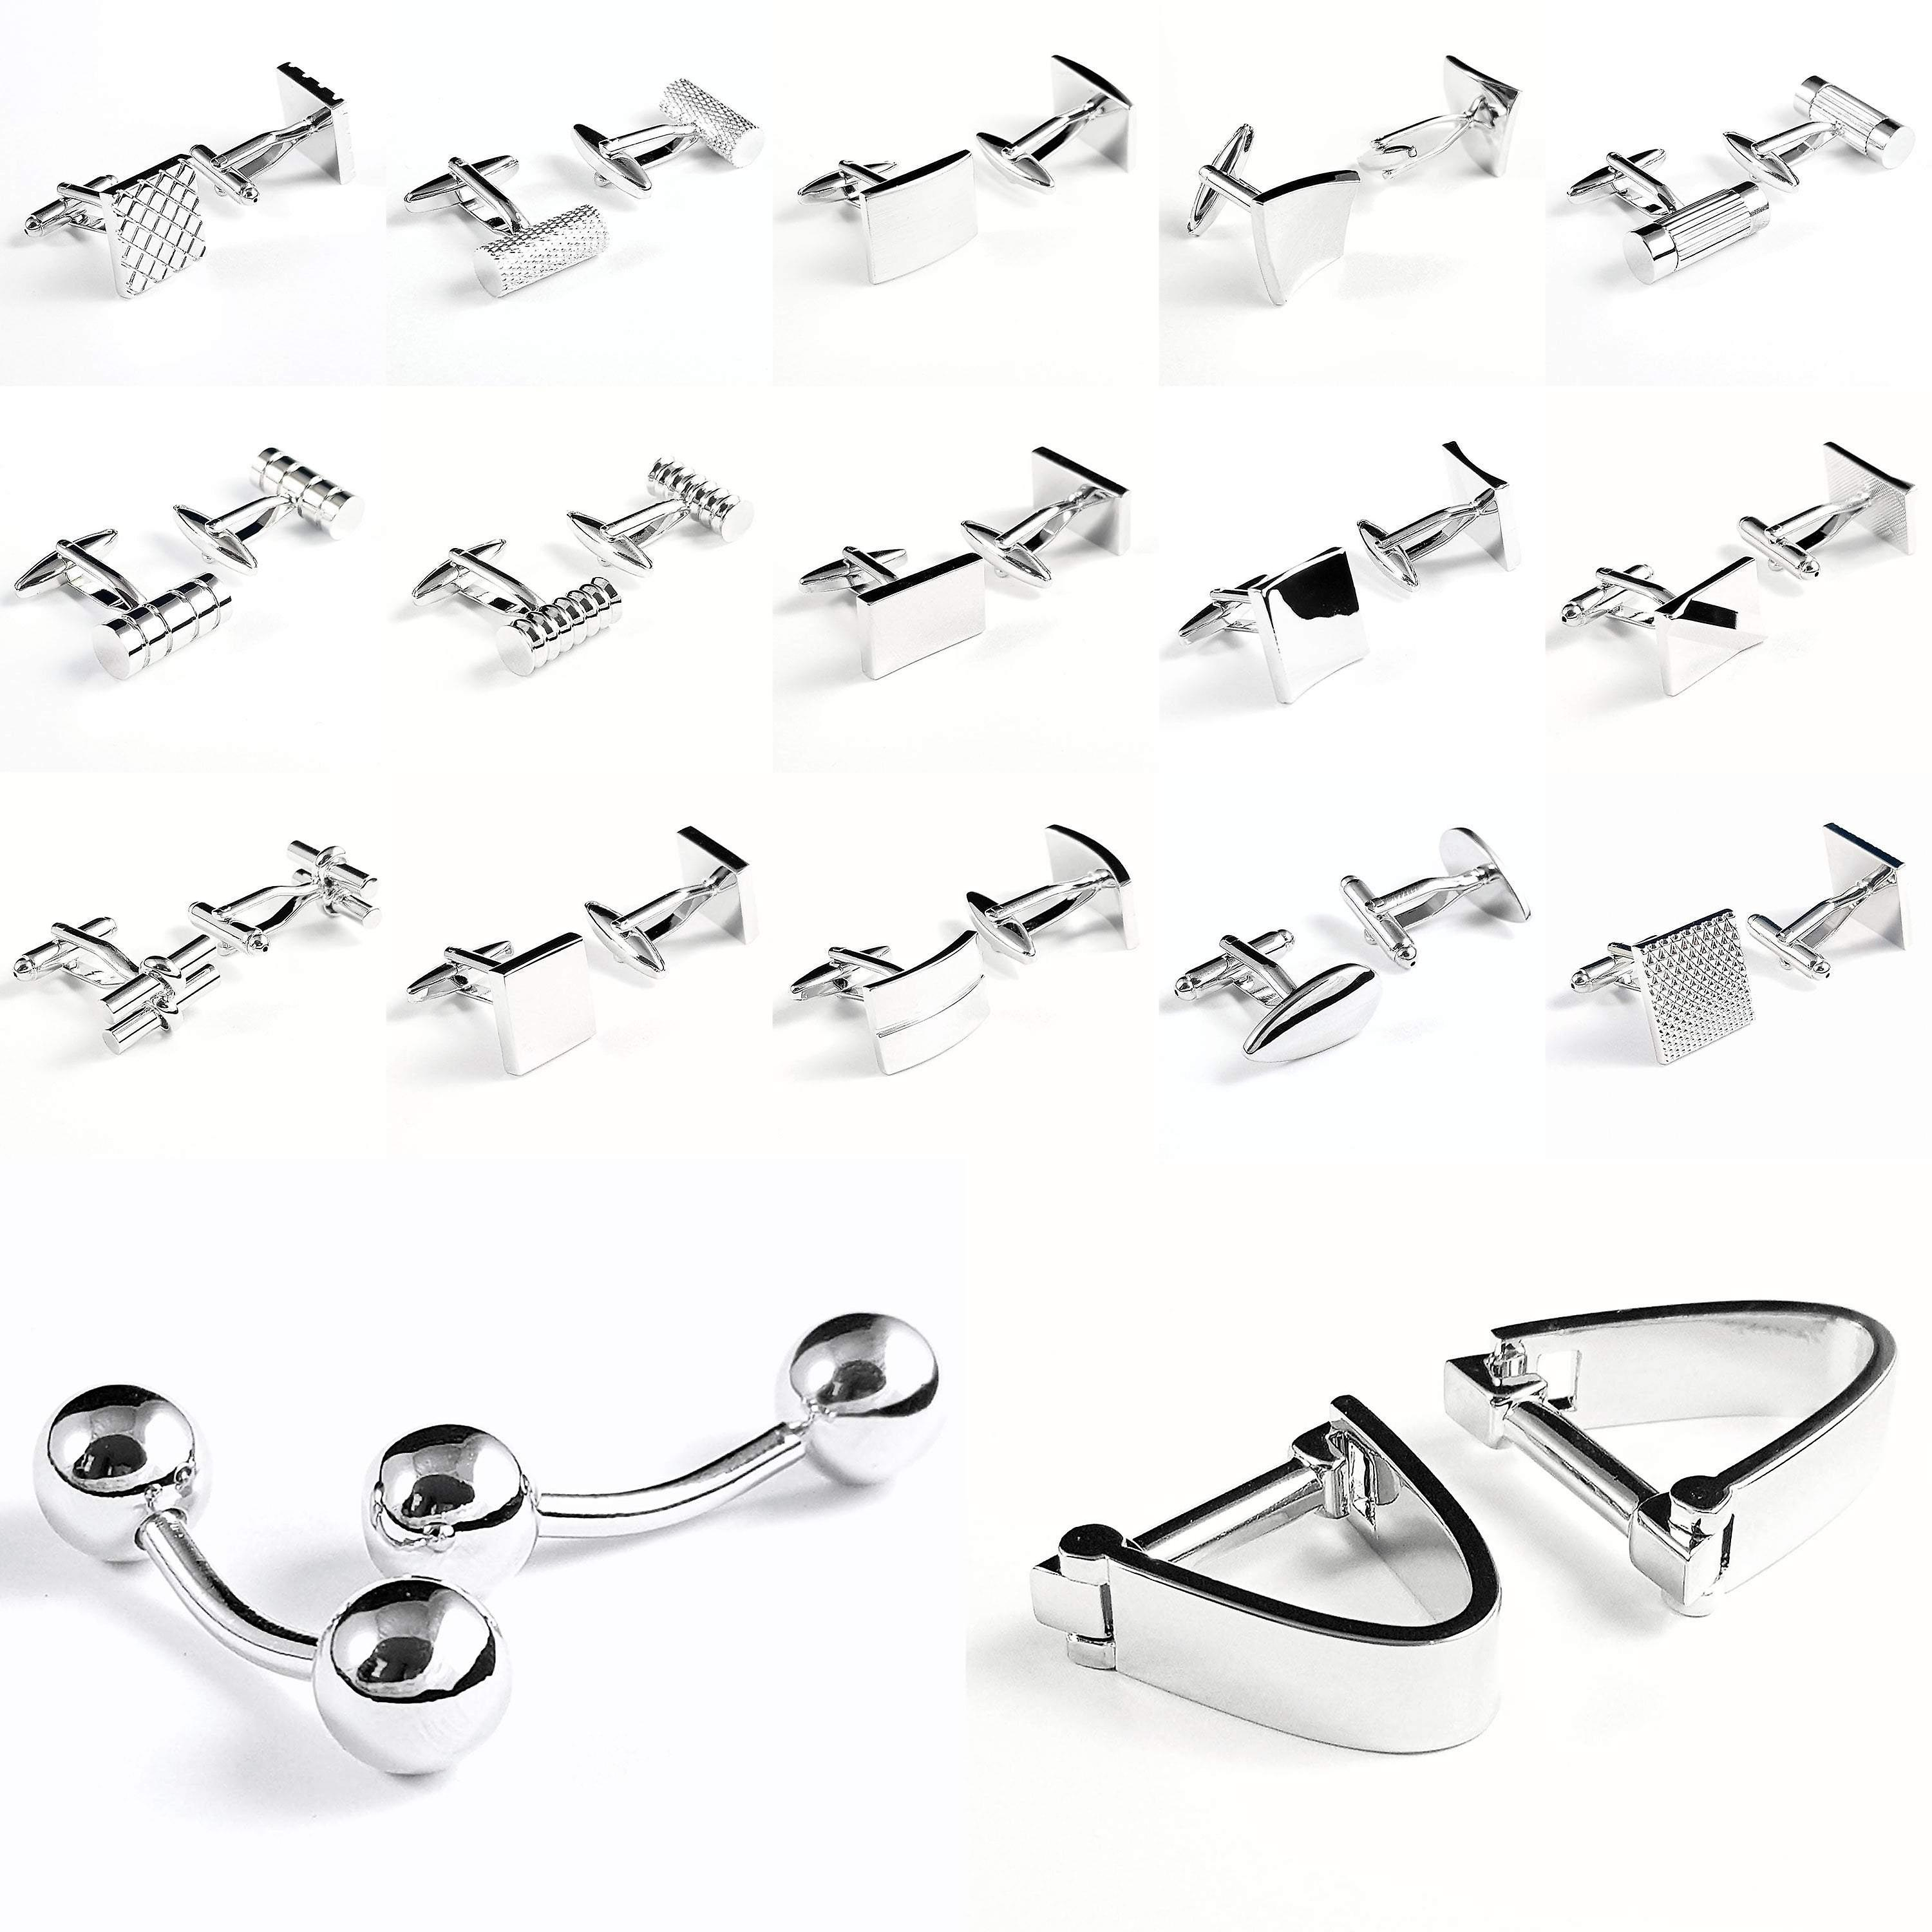 Beveled stainless steel wedding quality suit cuff links